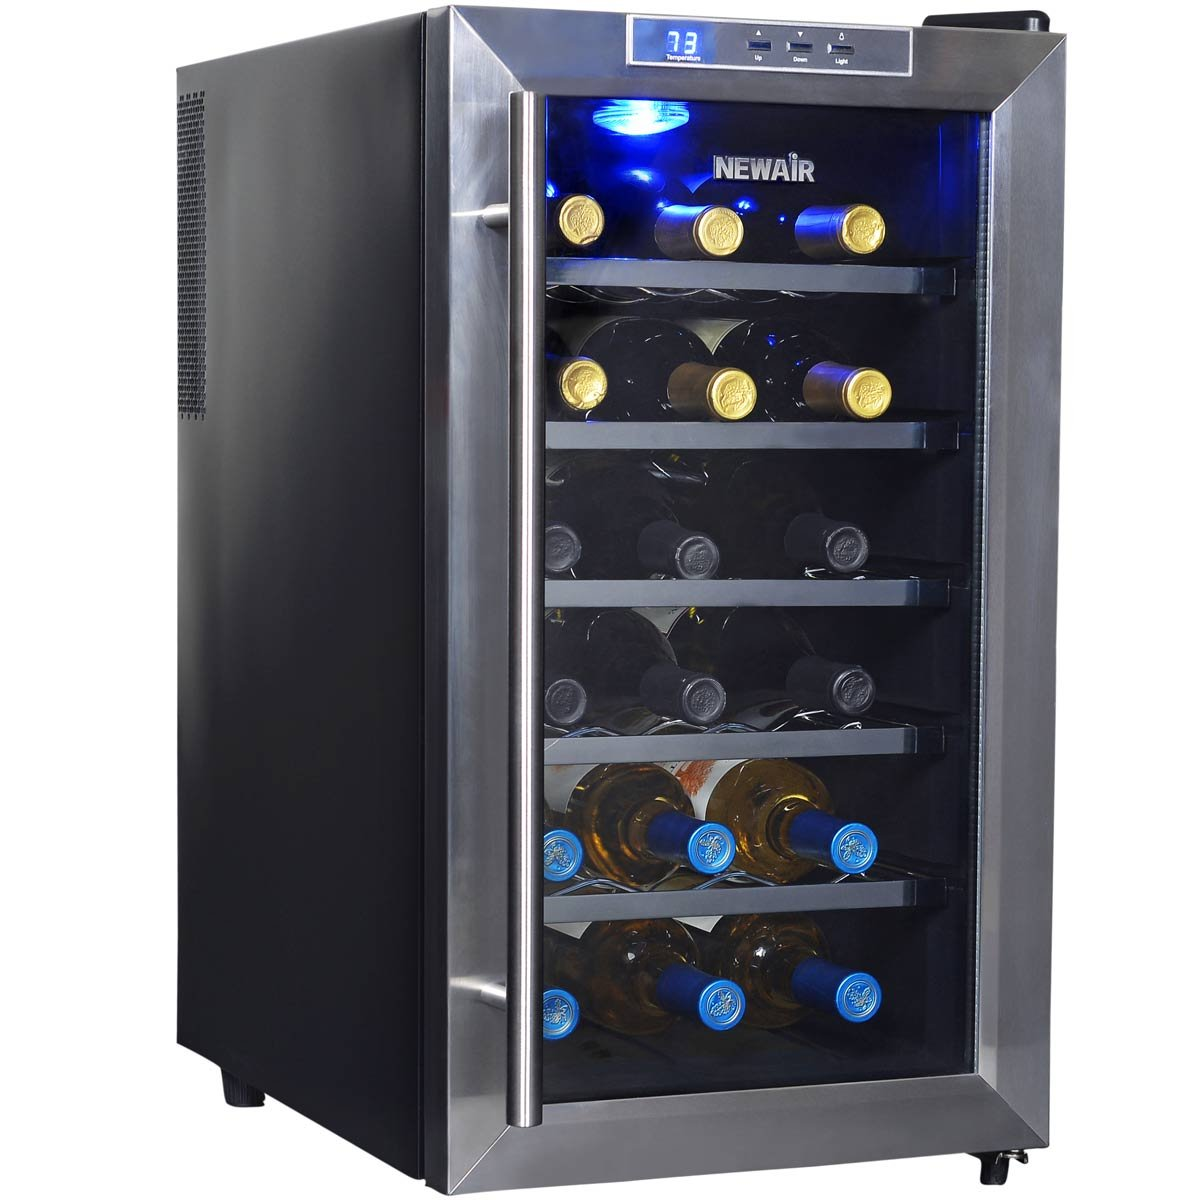 NewAir AW-181E 18 Bottle Thermoelectric Wine Cooler, Black by NewAir (Image #12)